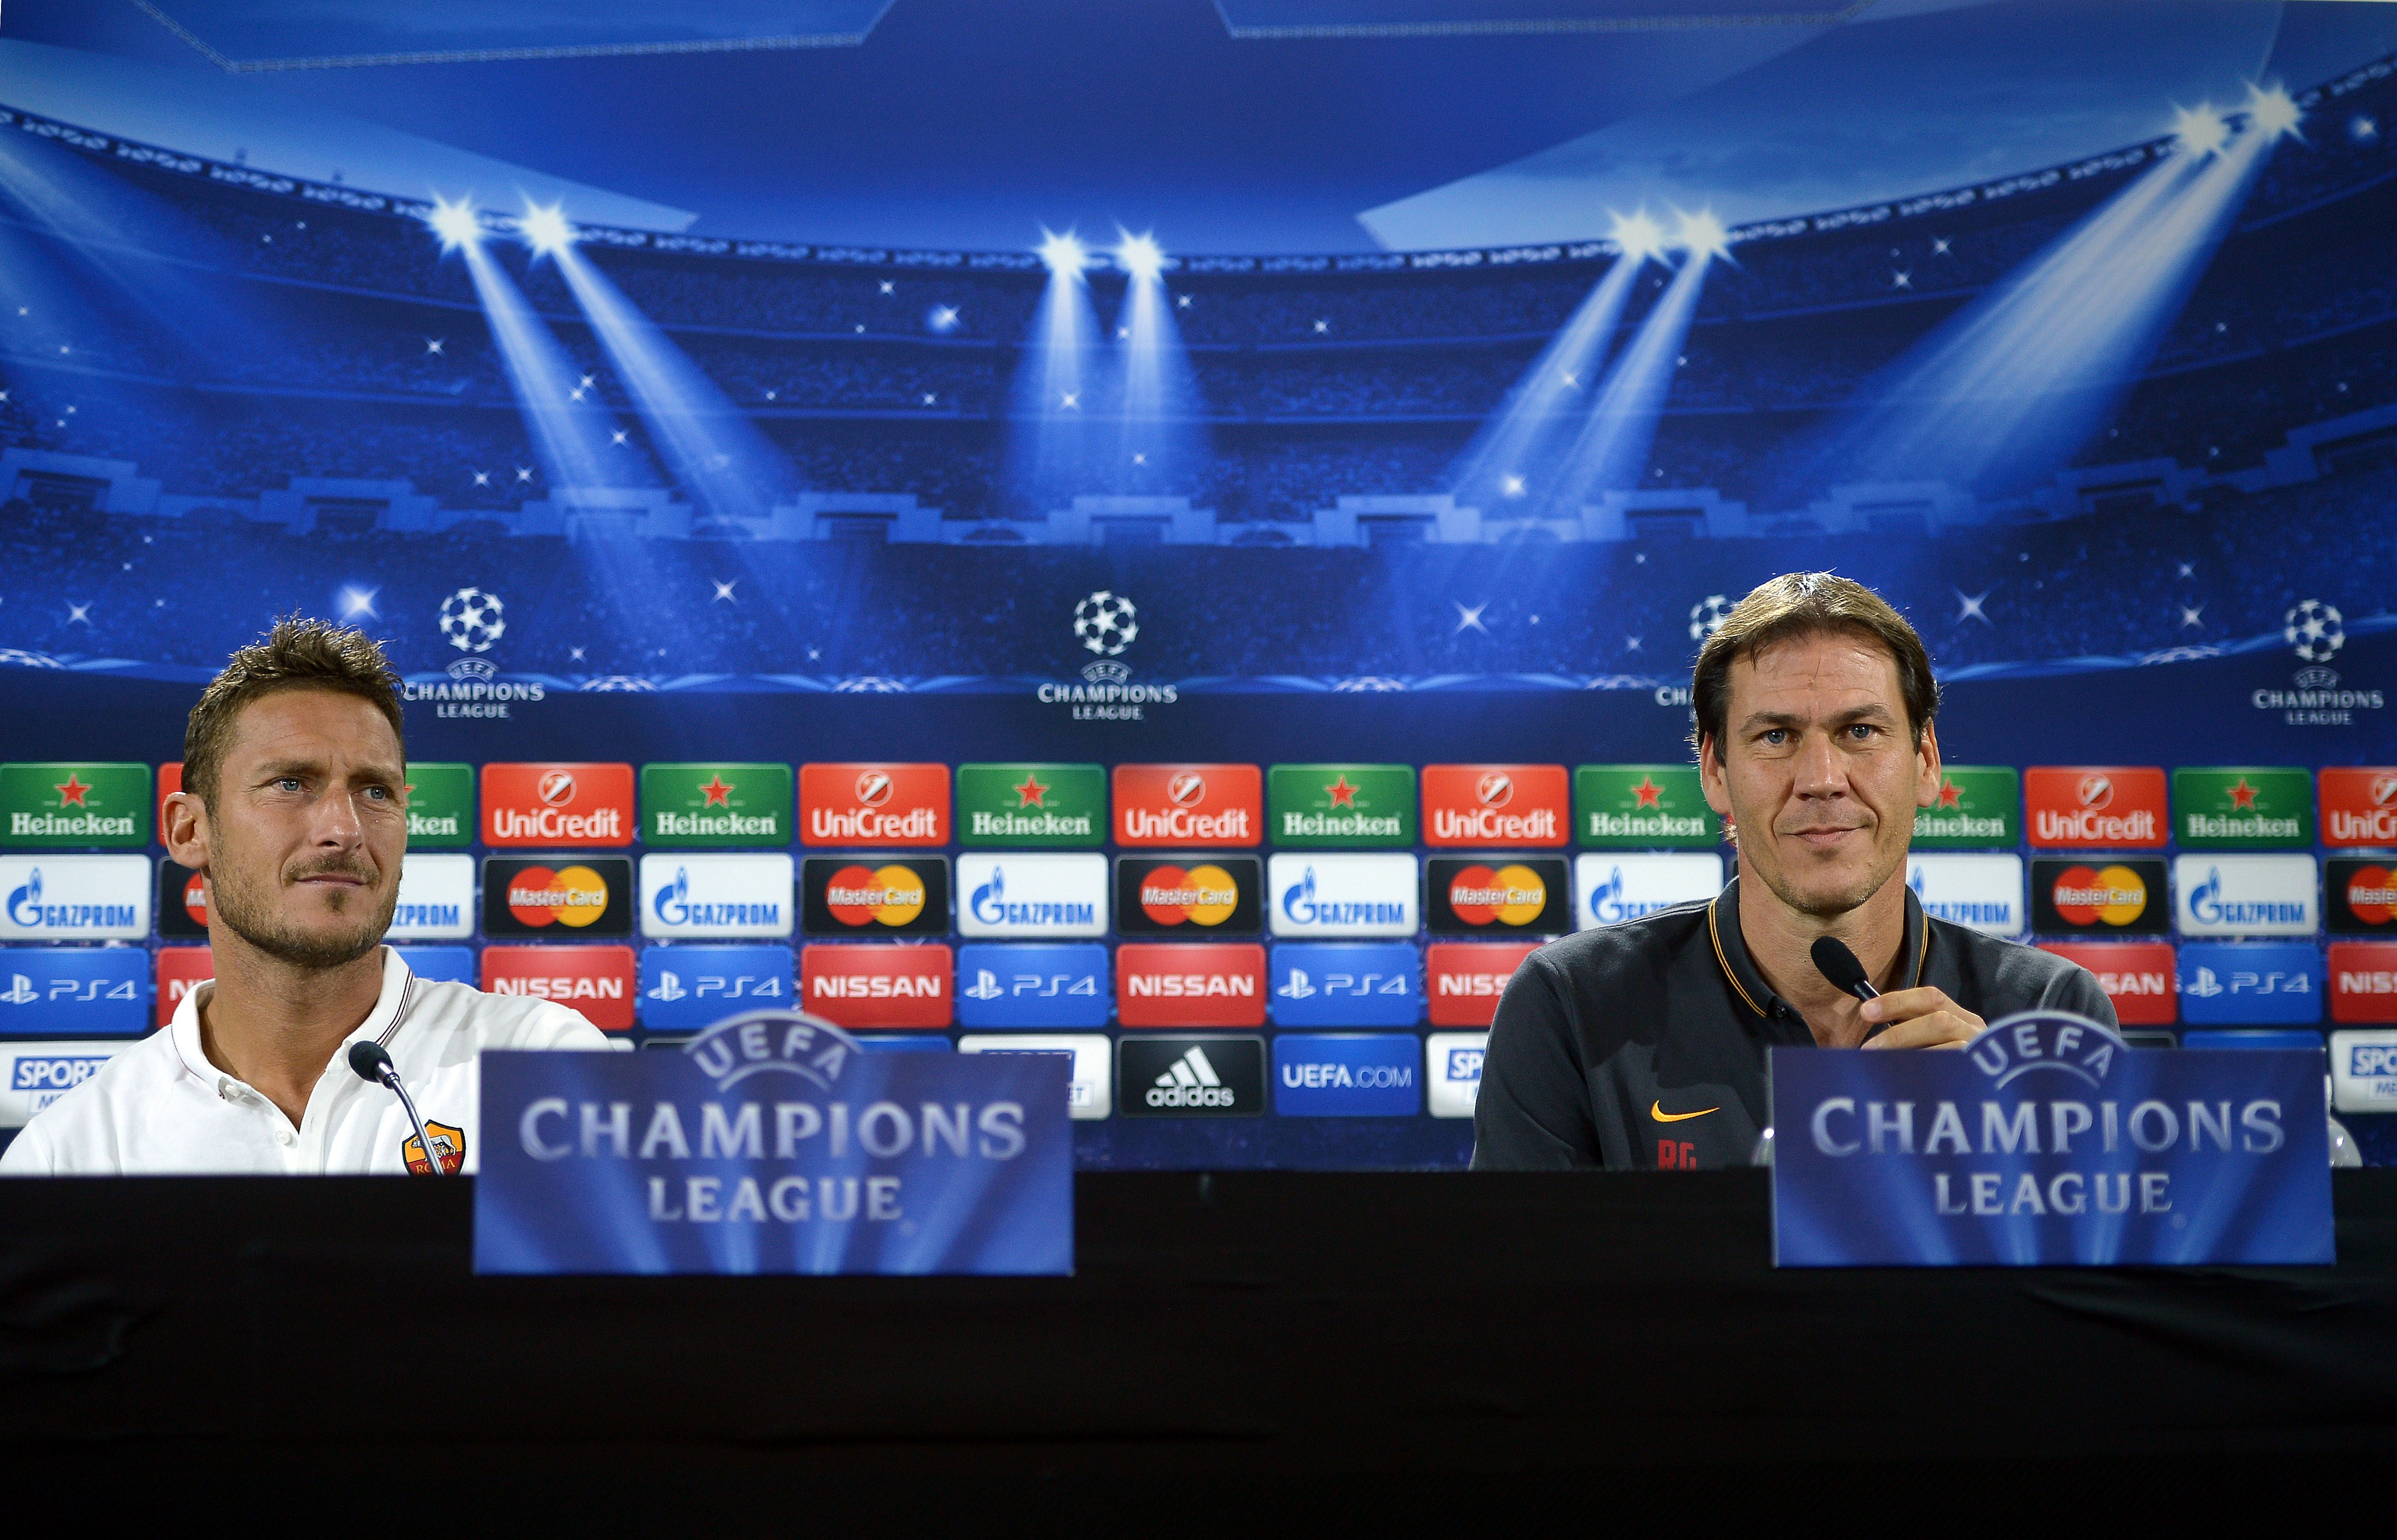 AS Roma captain Francesco Totti and coach Rudi Garcia give a press conference.